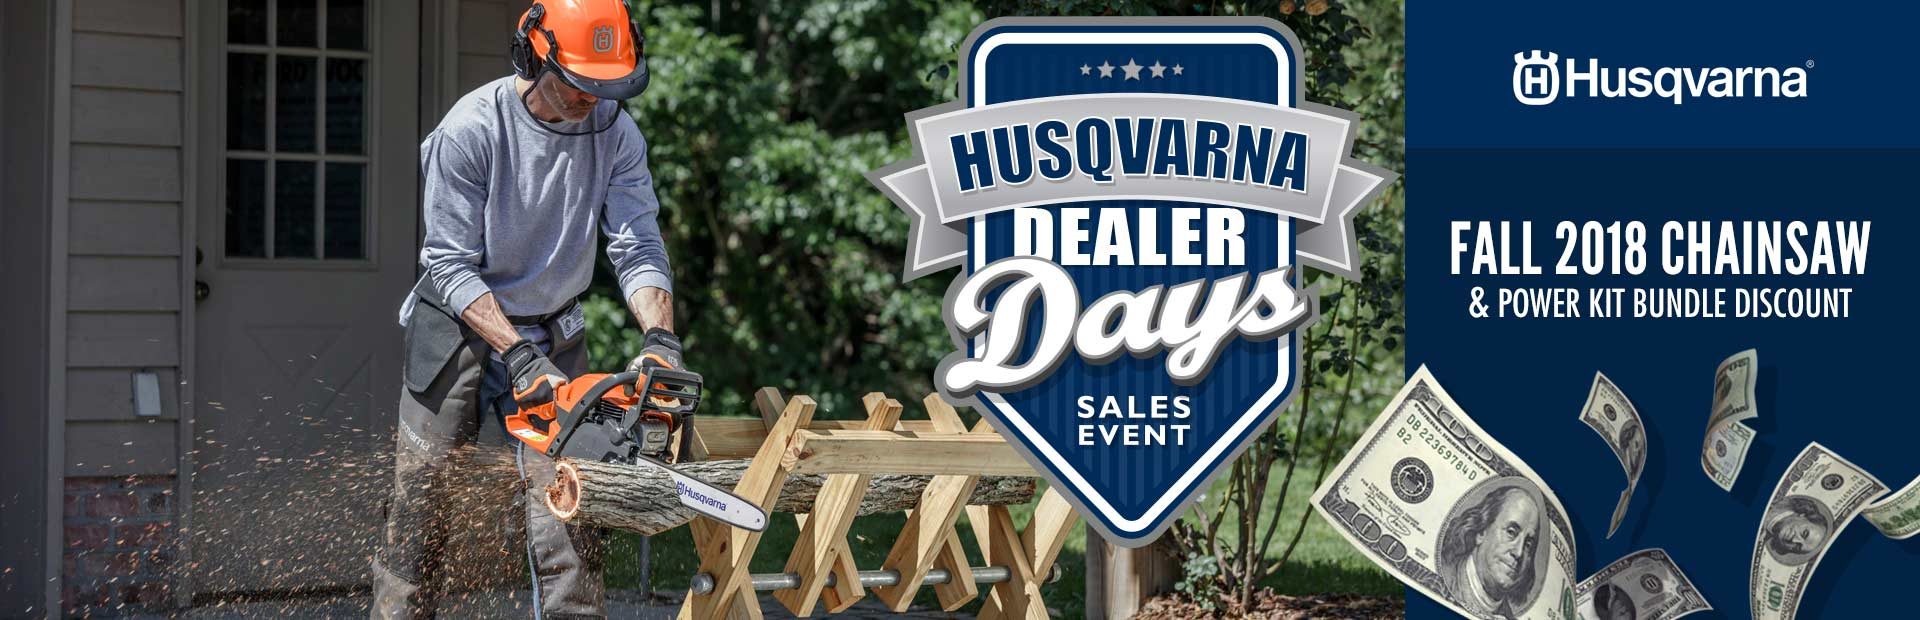 Husqvarna: Fall 2018 Chainsaw and Power Kit Bundle Discount